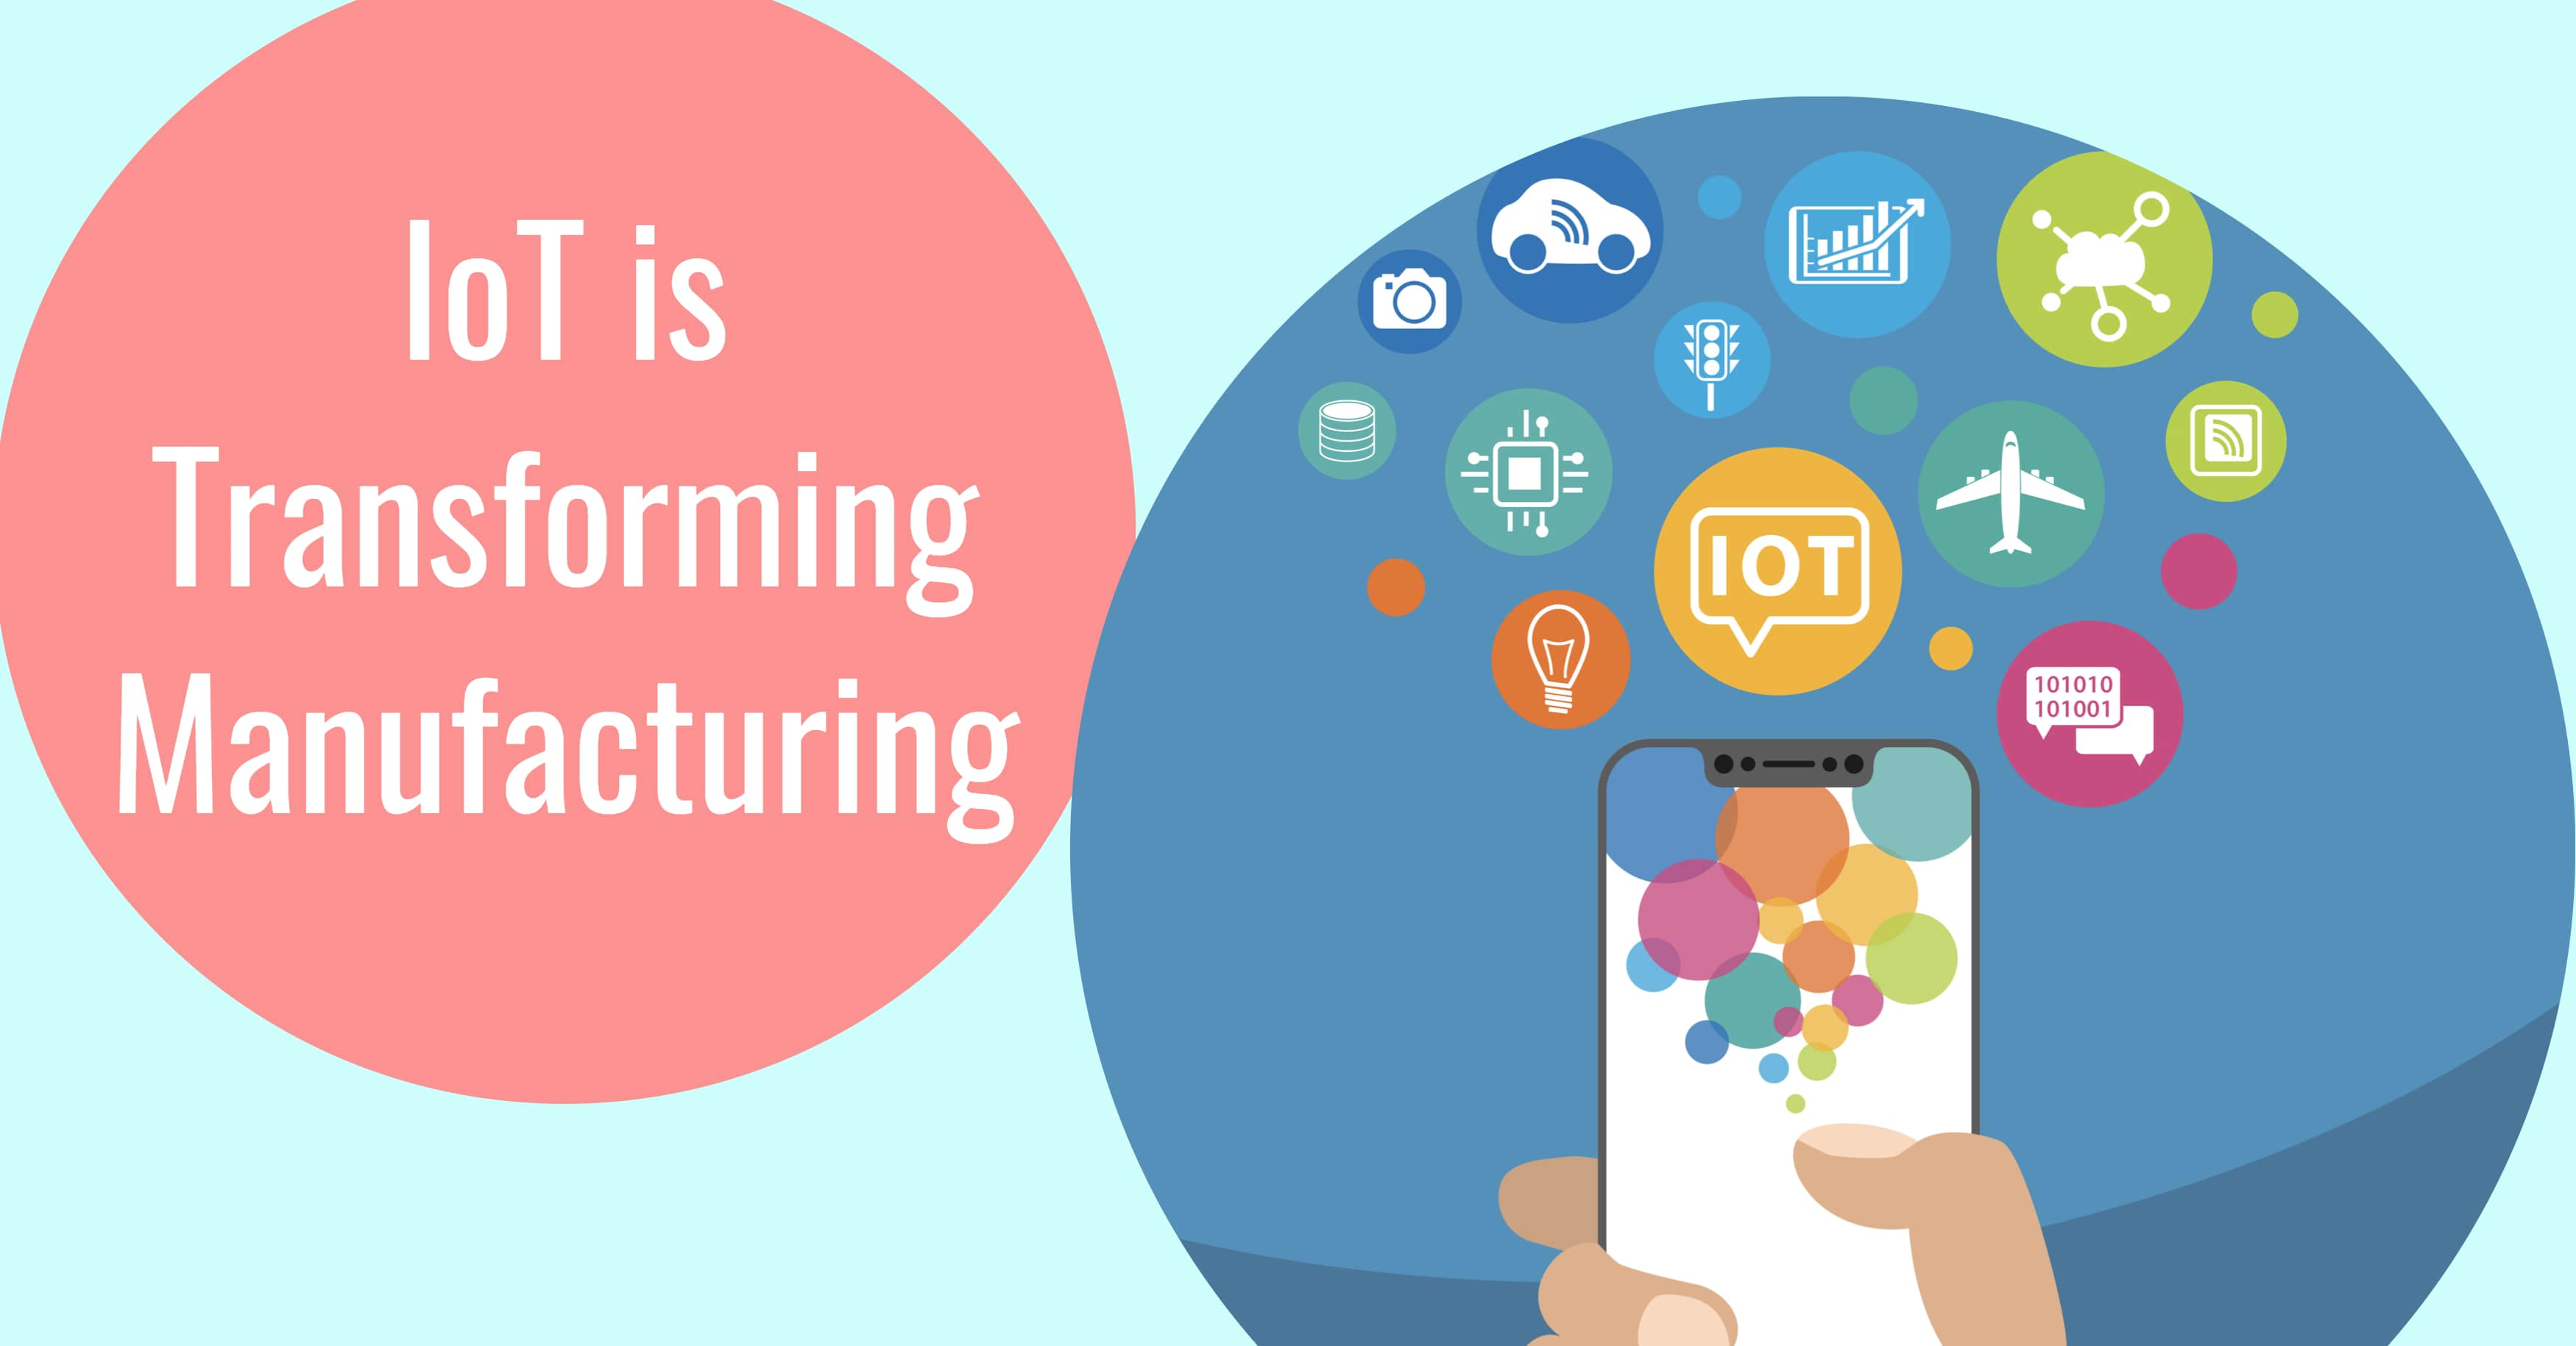 How is IoT Transforming Manufacturing?